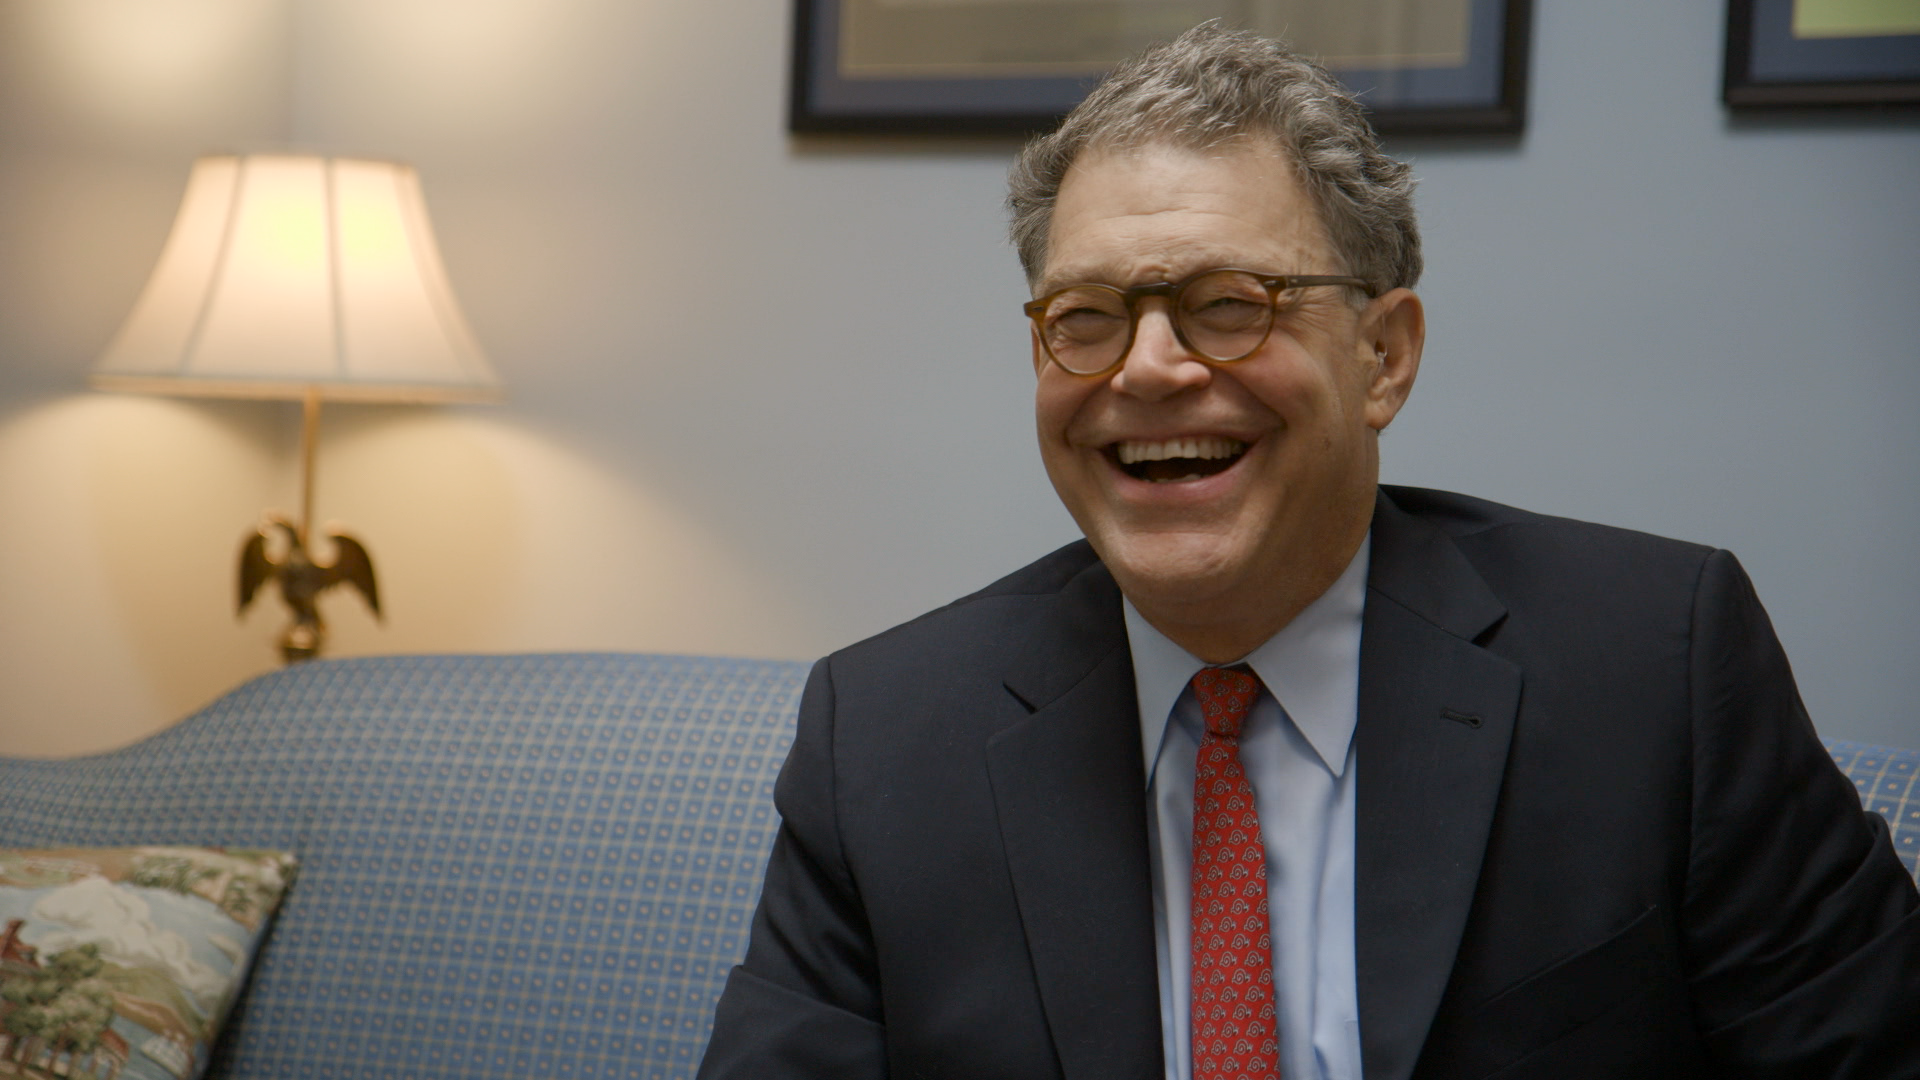 Senator Franken tells Letterman about who is behind a lot of the inaction in Washington on climate change. He calls them Siegfried and Roy, and they have Franken's Republican colleagues running scared. Who are these guys? https://www.instagram.com/YearsOfLiving/